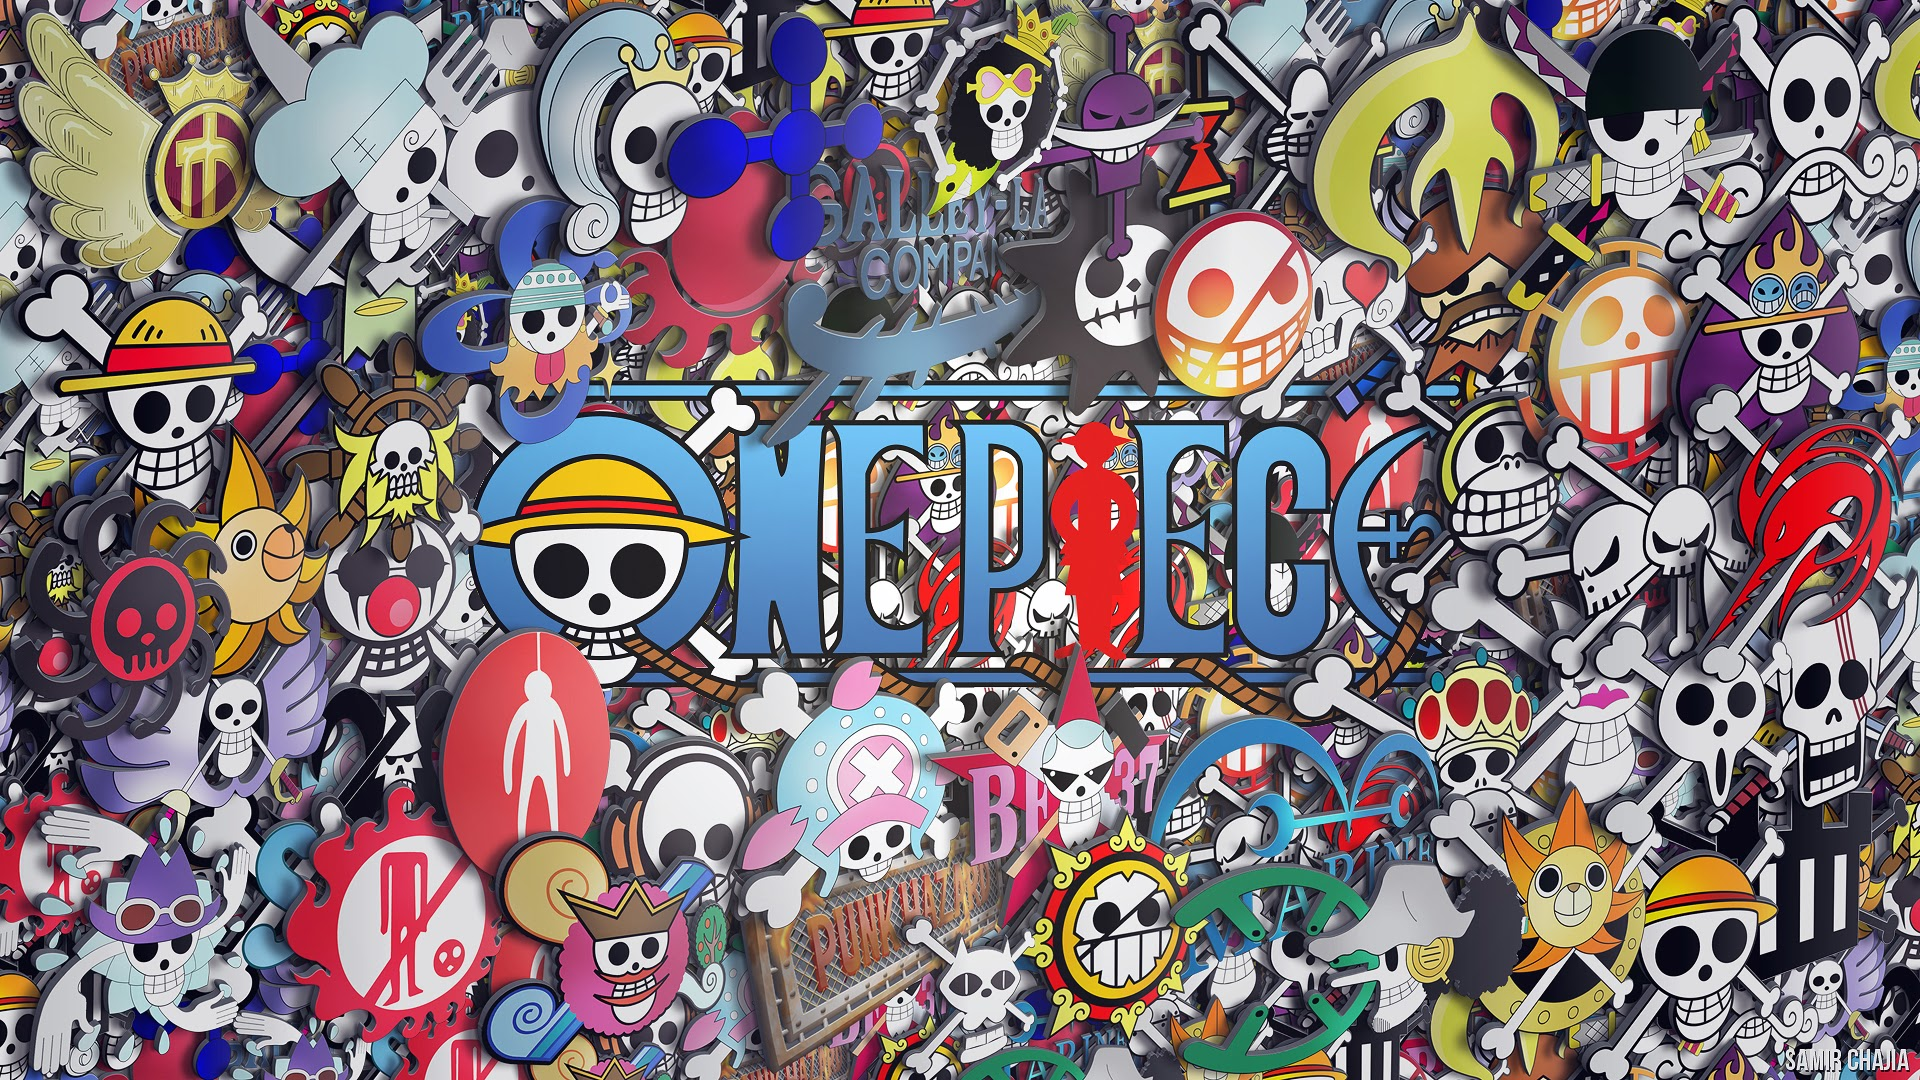 1189 One Piece HD Wallpapers | Backgrounds - Wallpaper Abyss